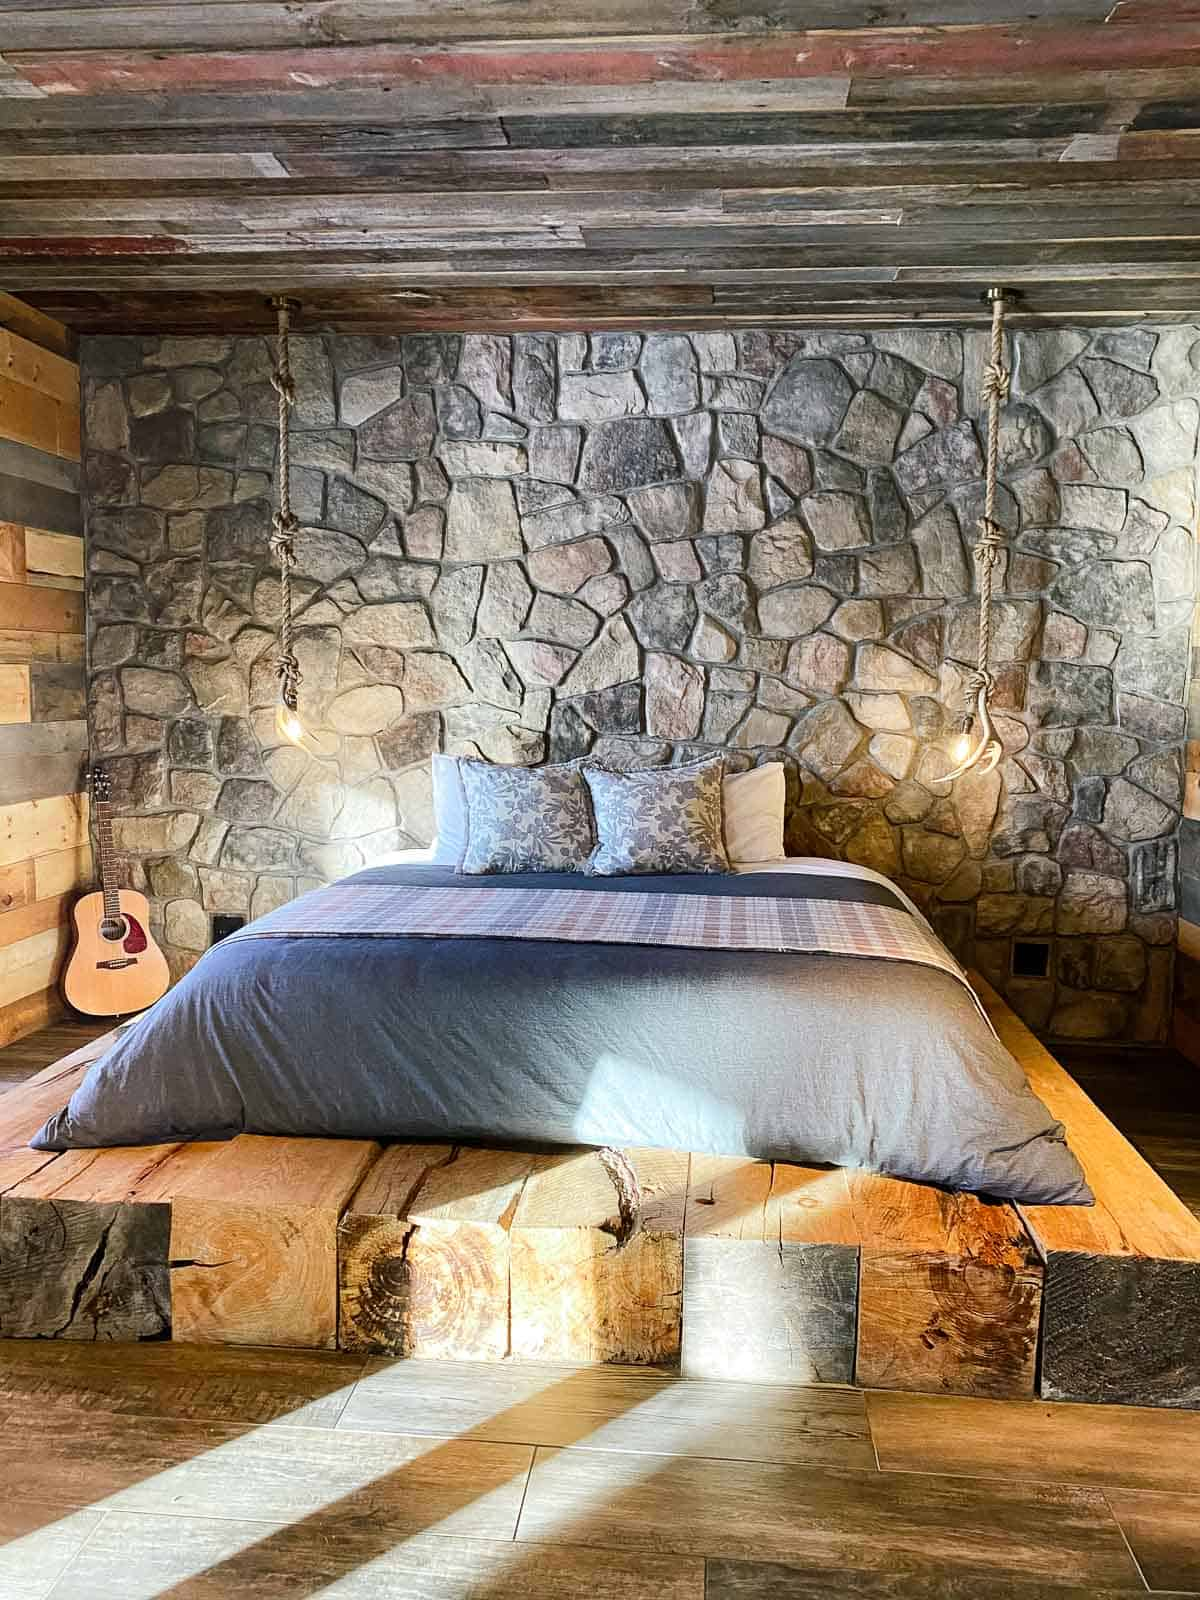 rustic bed with grey blanket in cabin on wood platform with stone wall behind it